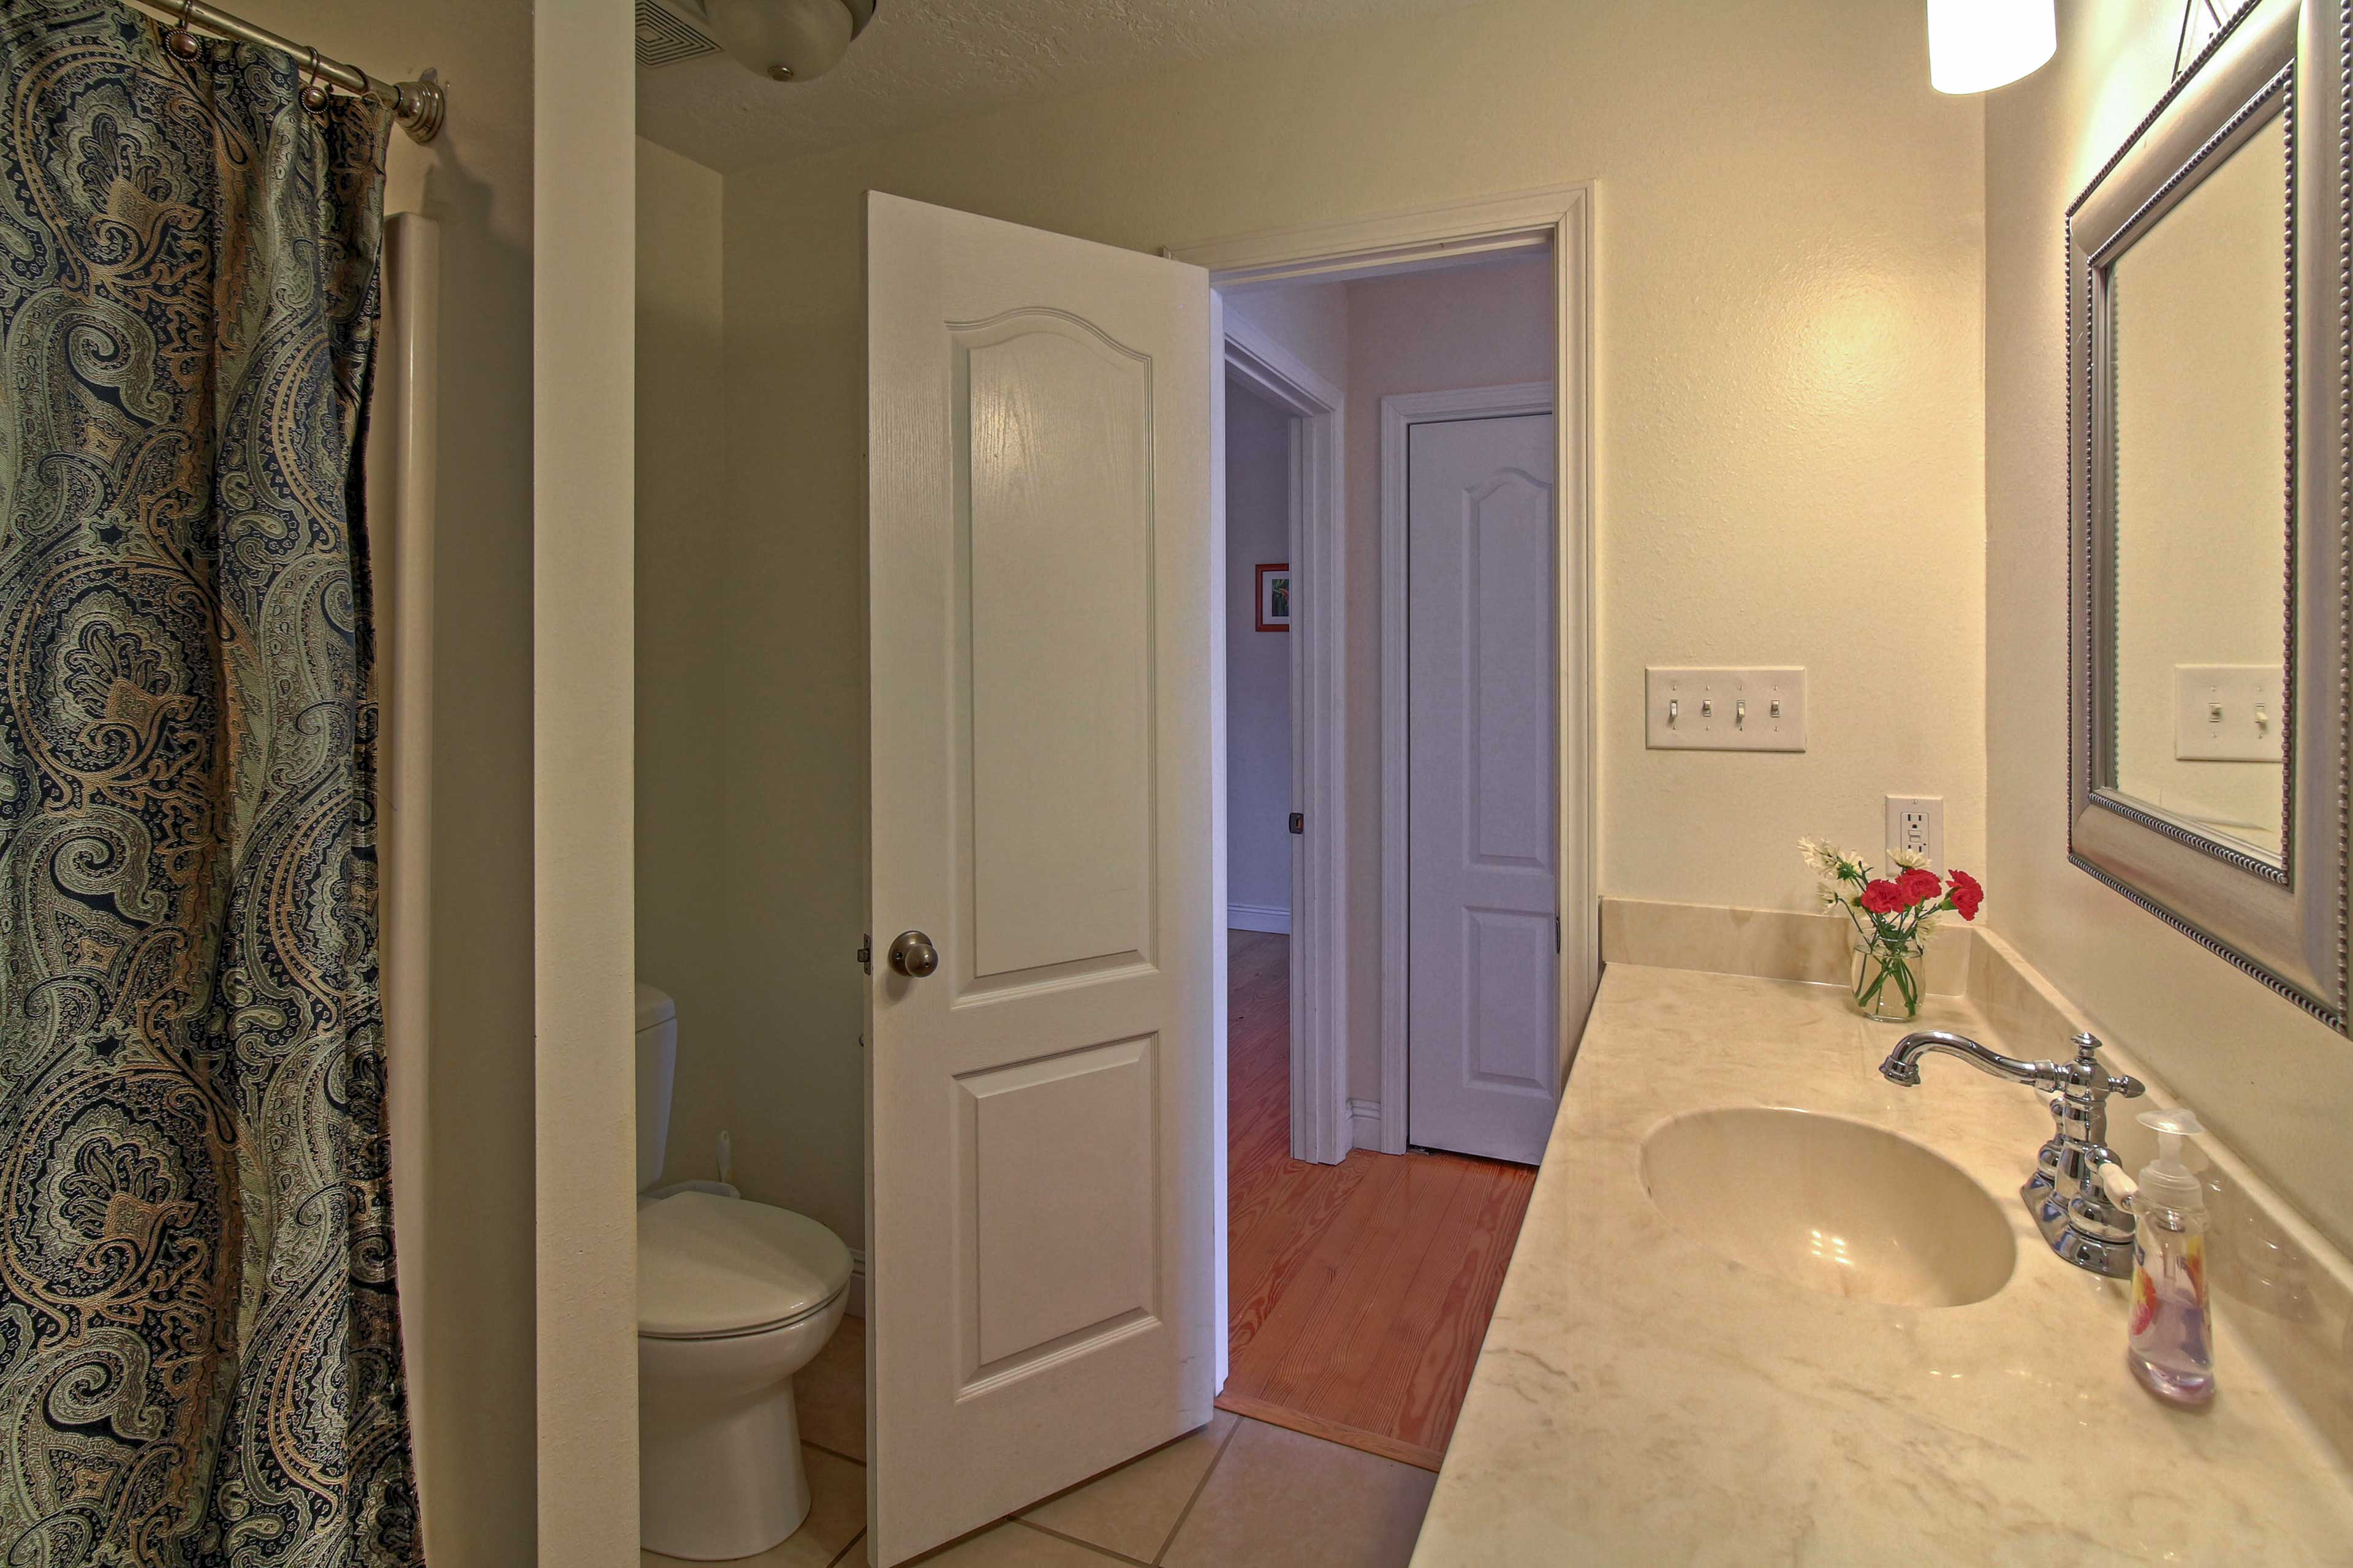 Freshen up for a night on the town in this cozy hallway bathroom.